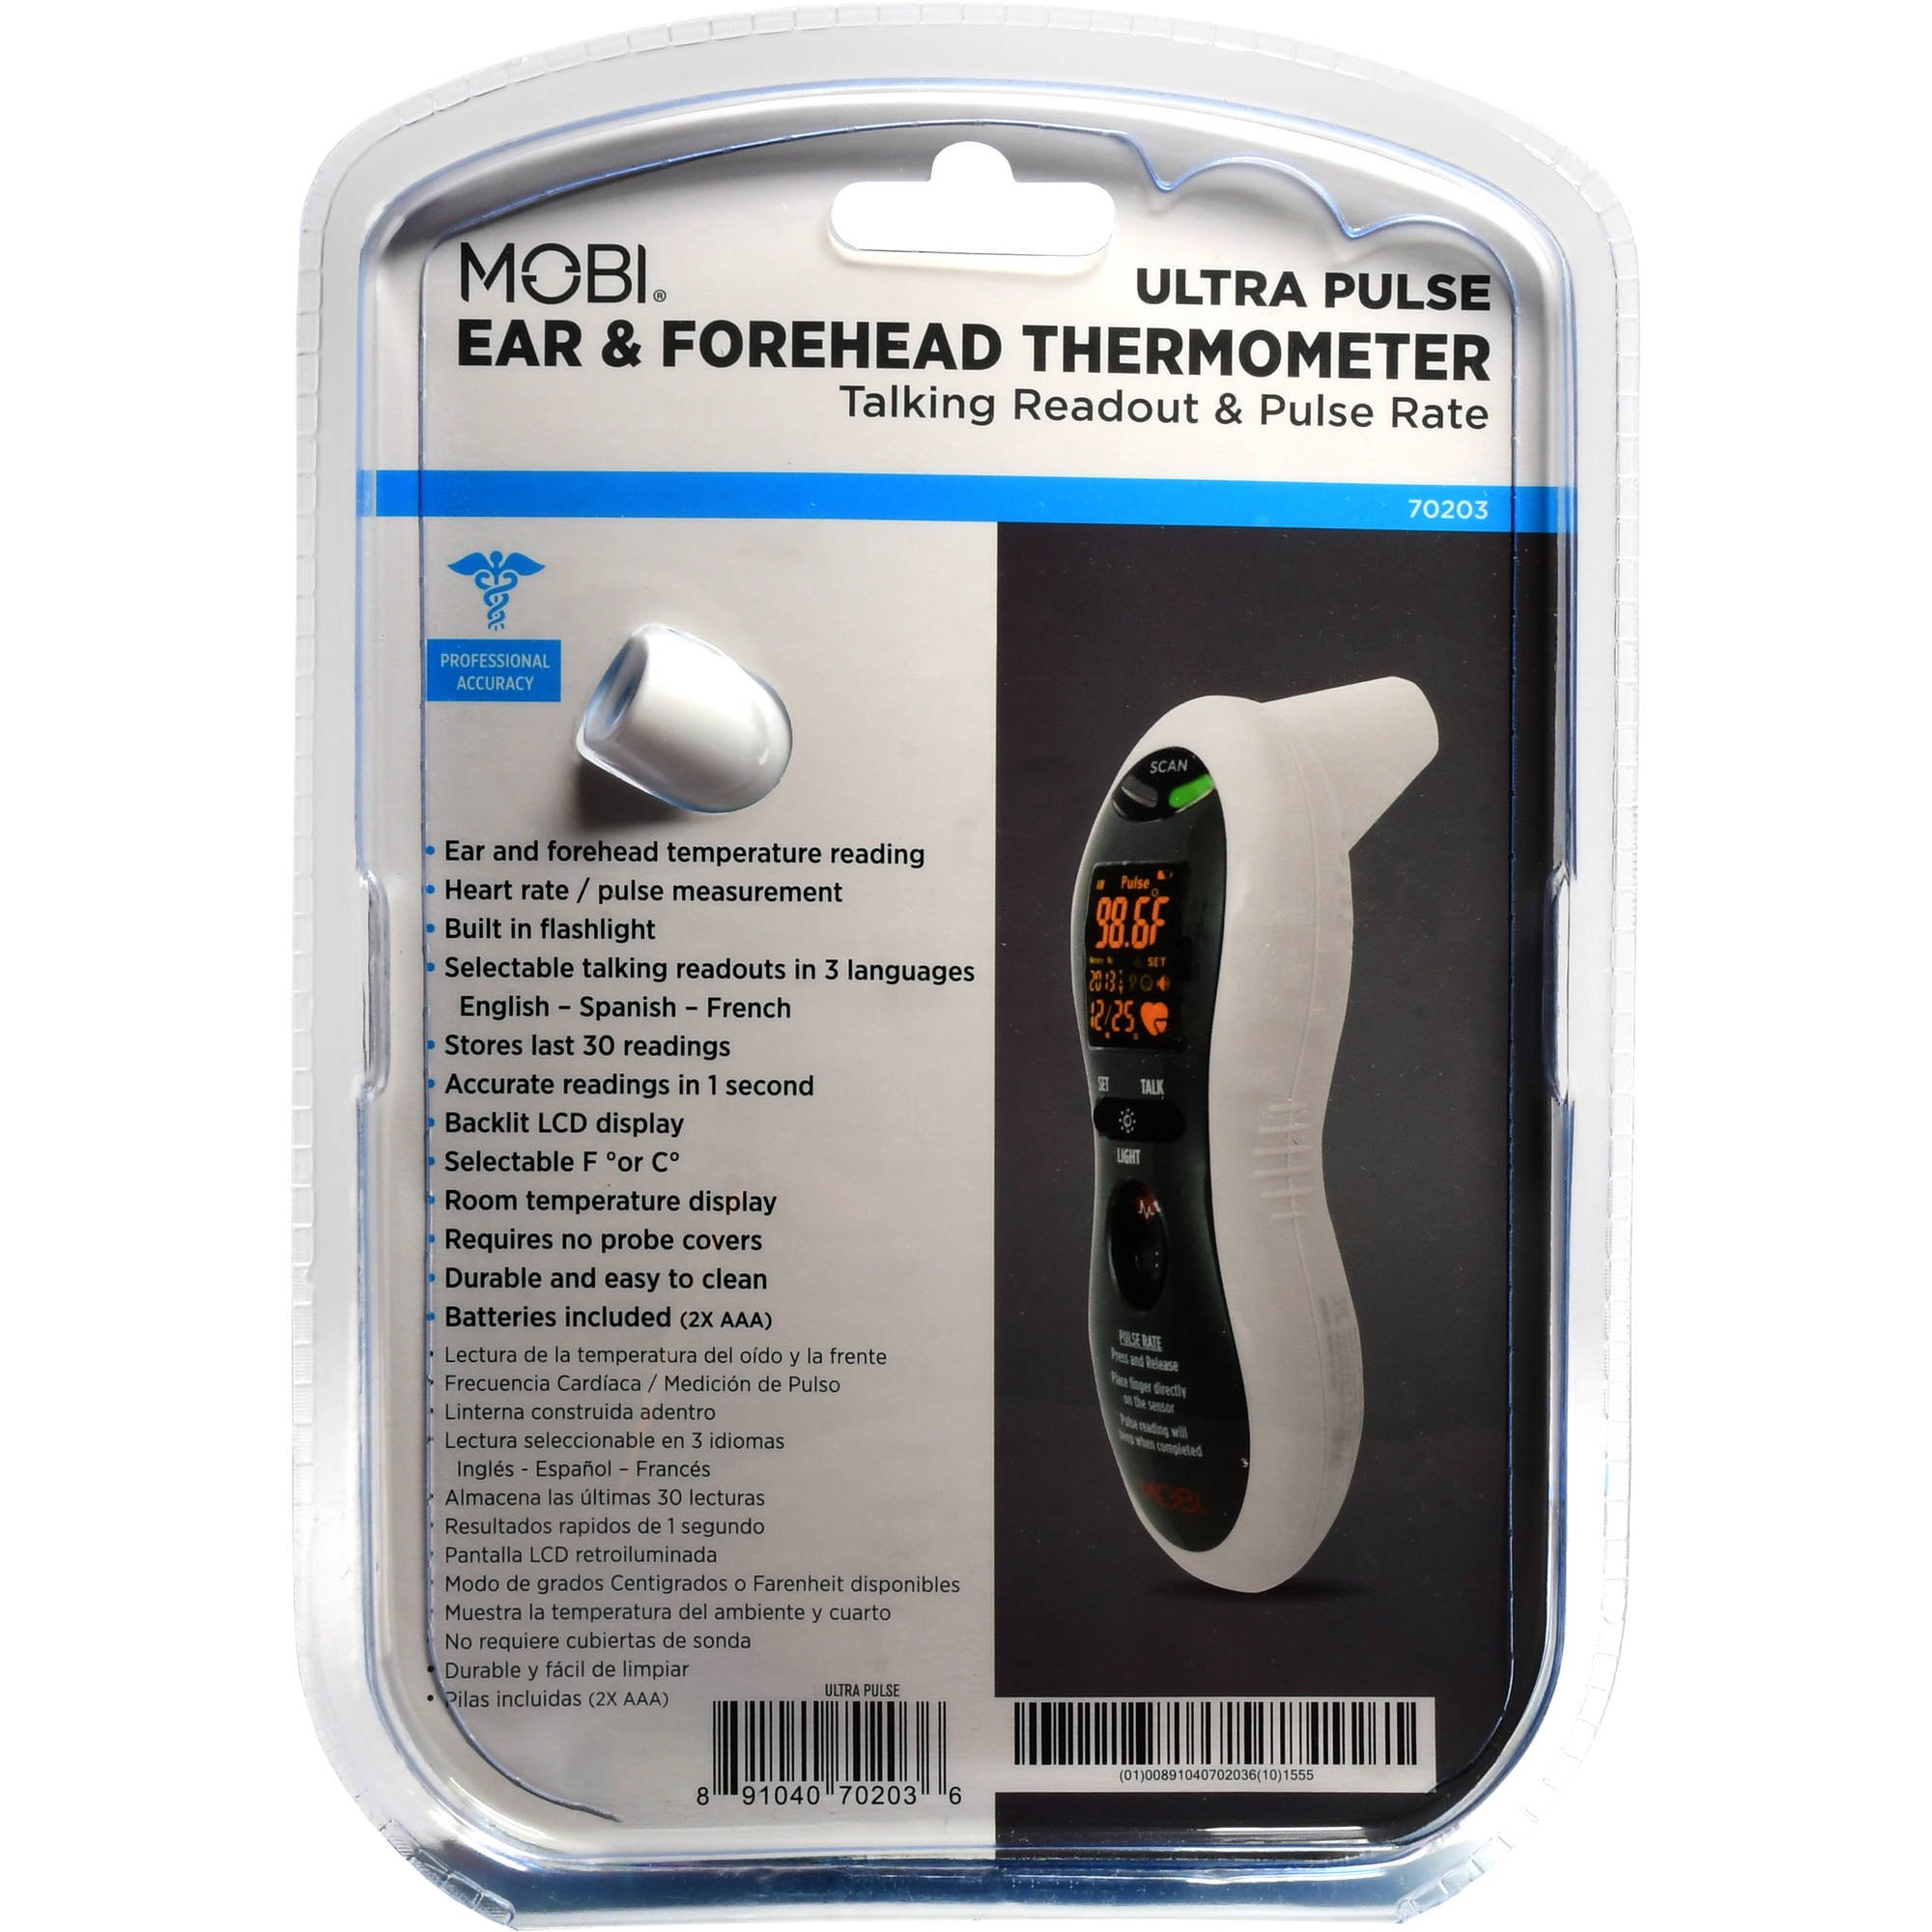 MOBI Ultra Pulse Talking Ear and Forehead Thermometer with Pulse Meter, High Fever Indicators and 3 Languages by Mobi Technologies